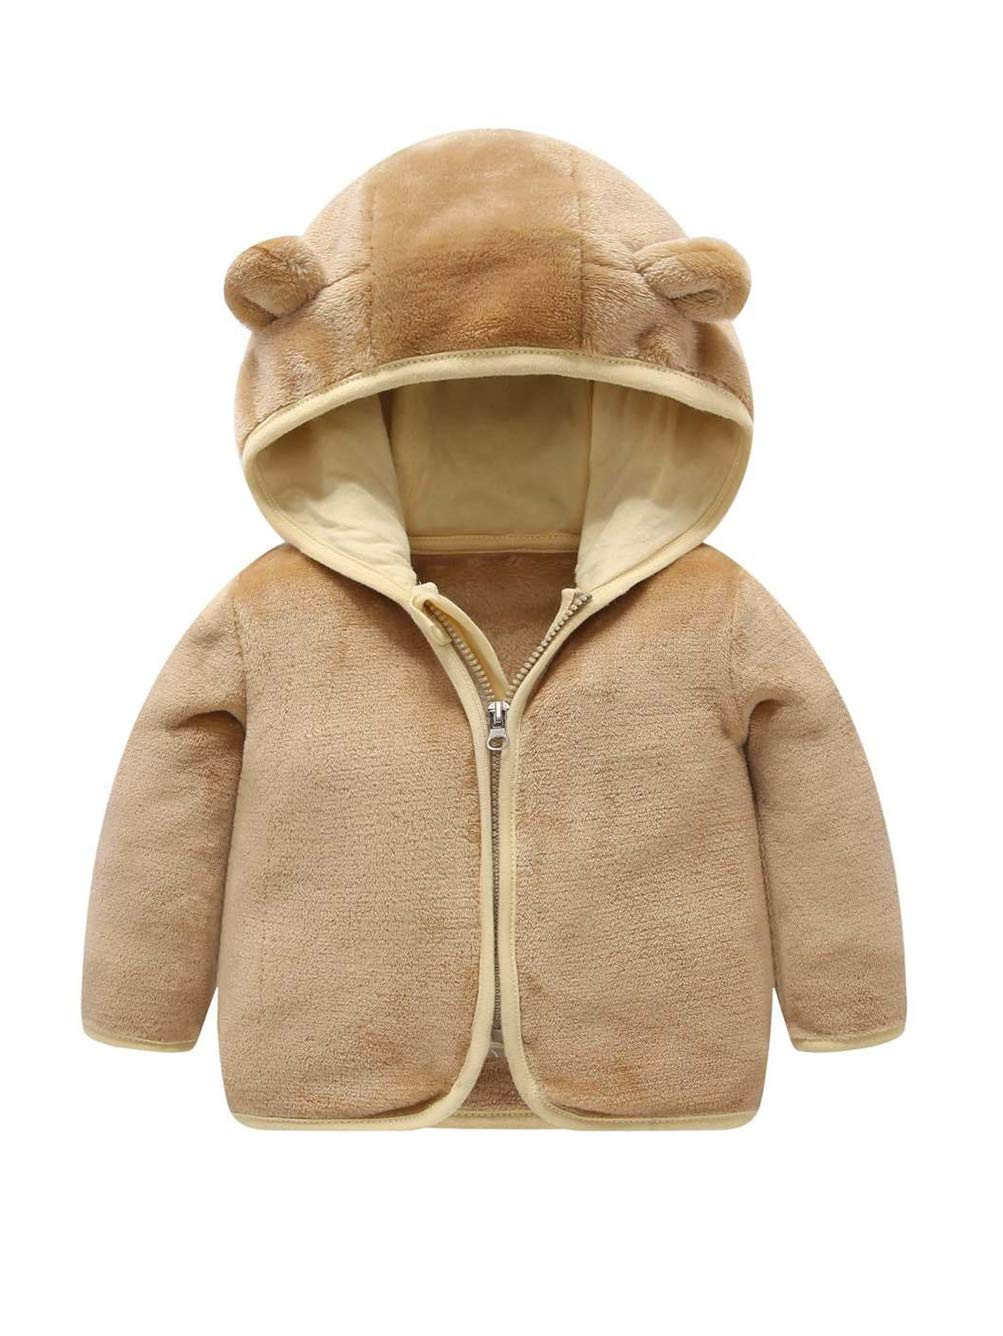 Voopptaw Little Kids Bear Ears Hooded Zipper Coral Fleece Jacket Outerwear